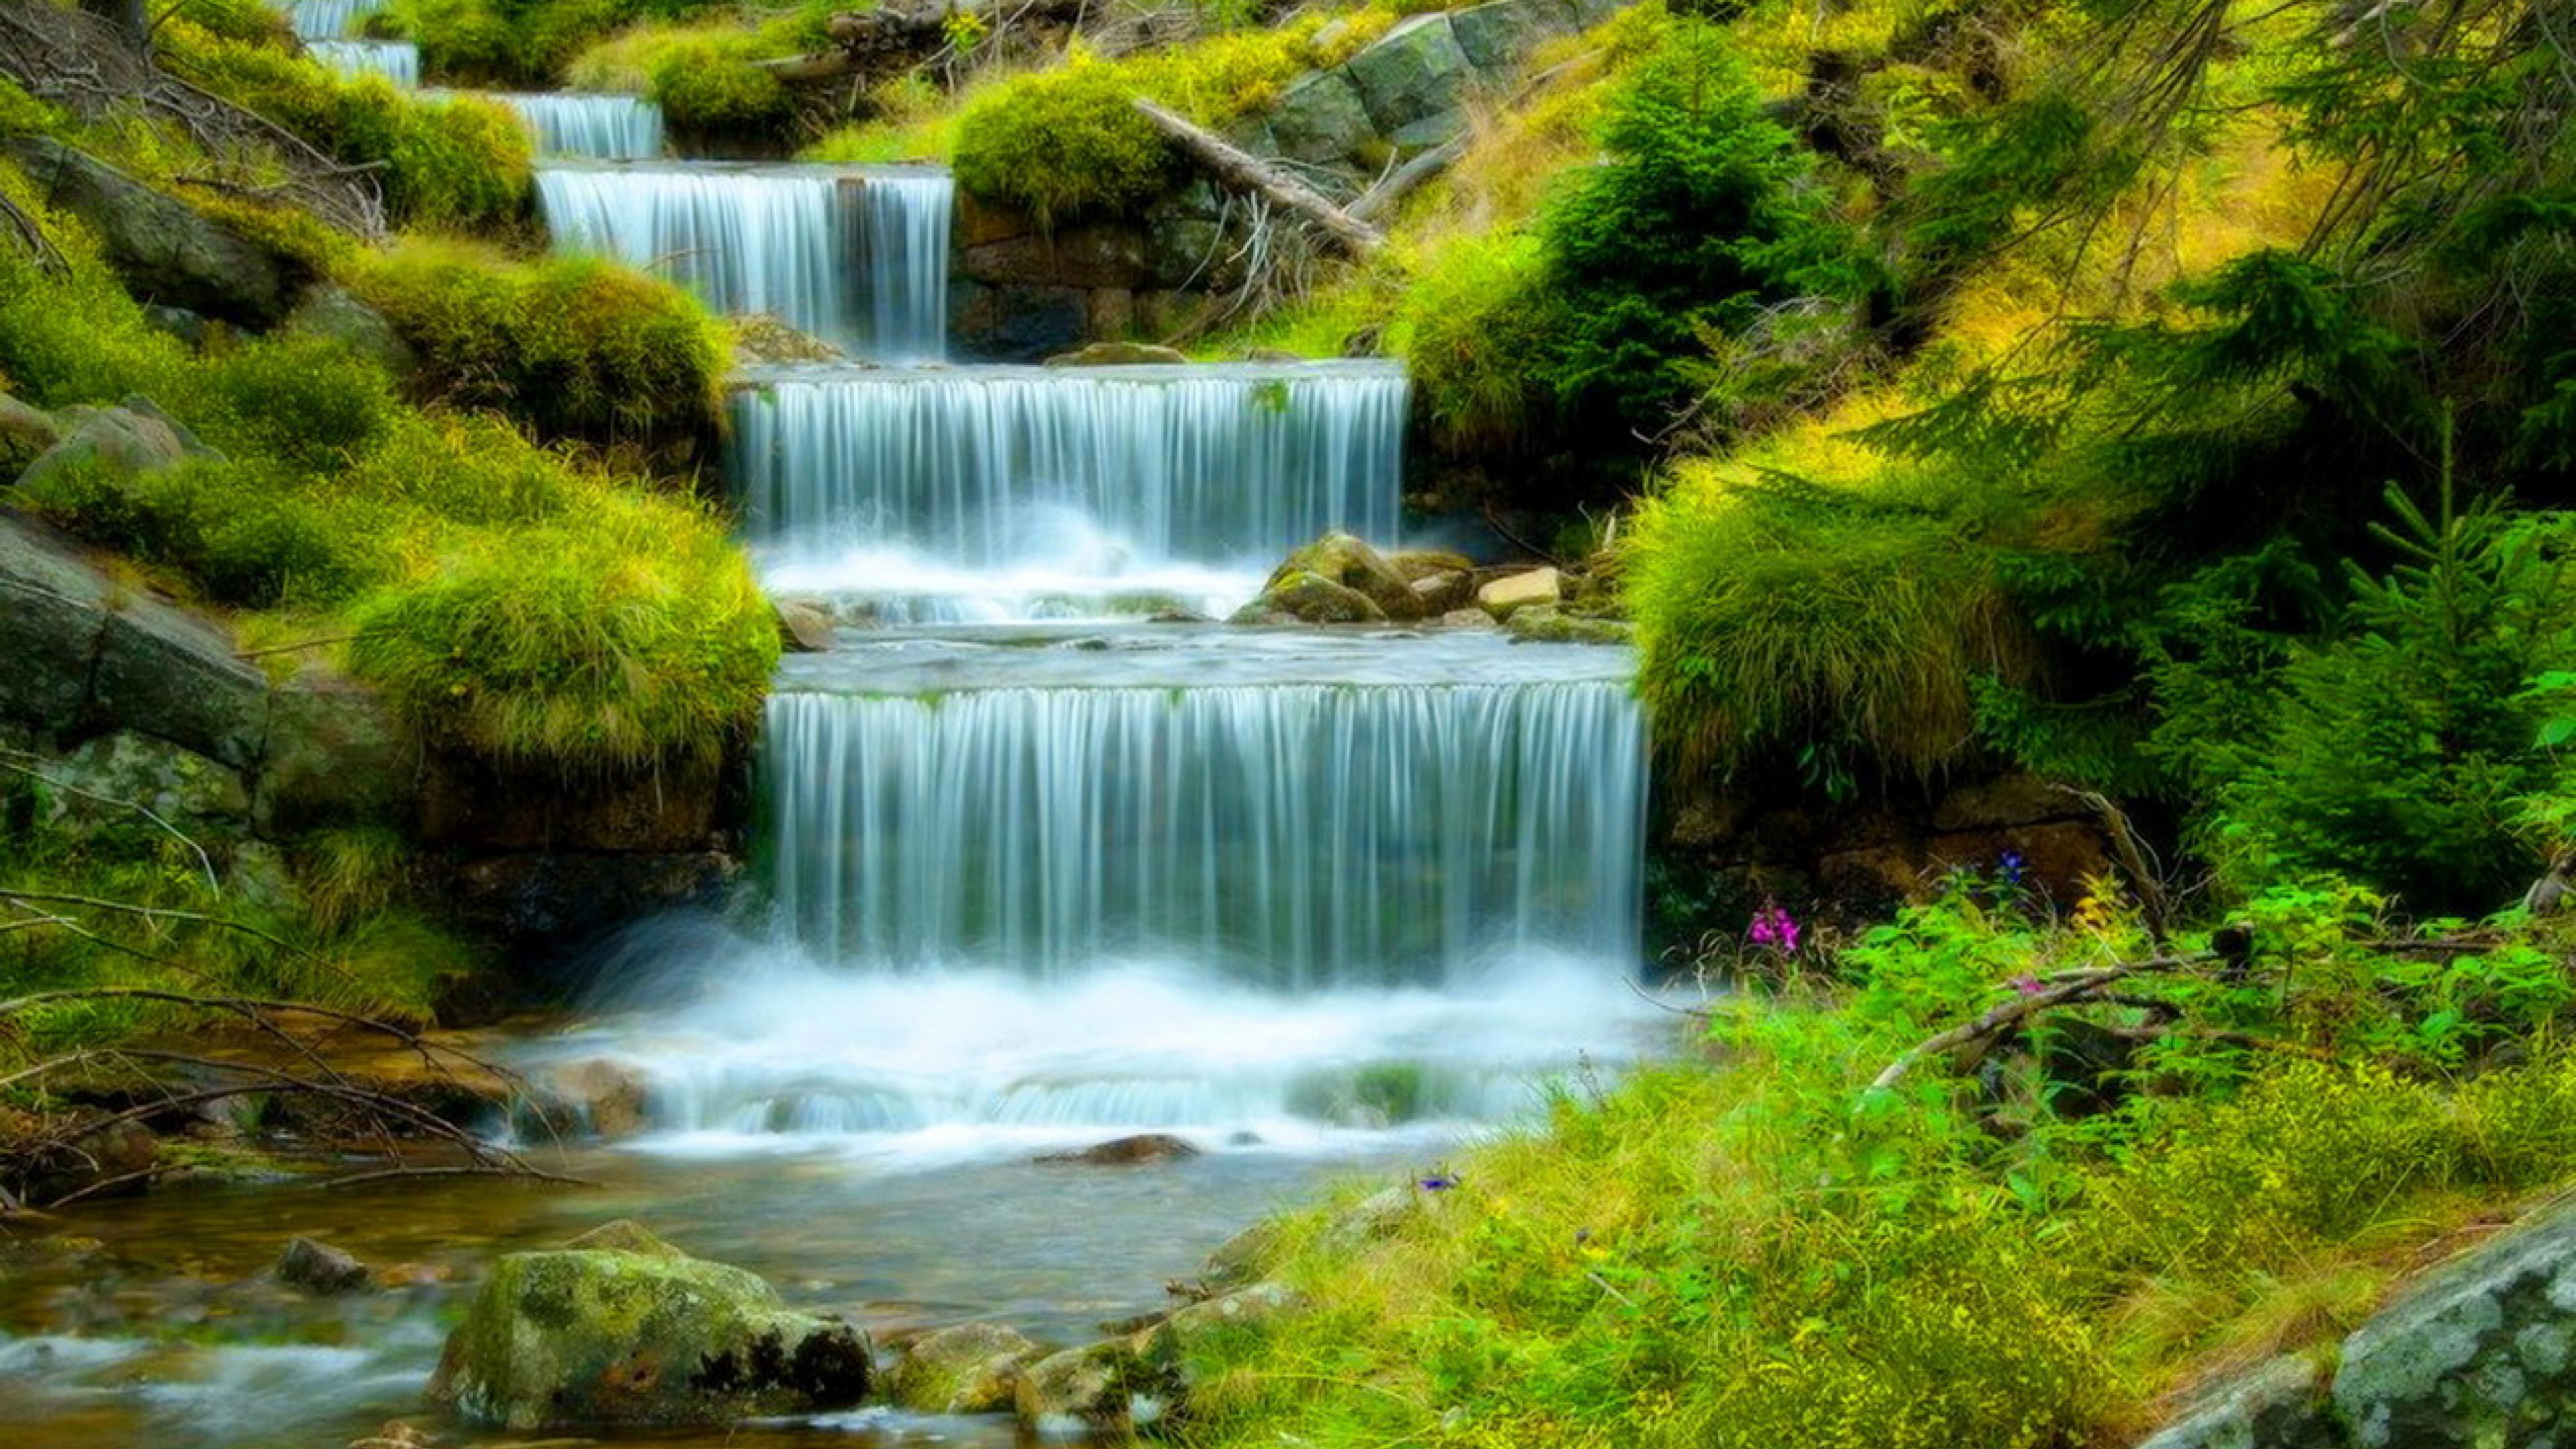 1280x1024 Fall Wallpaper River With Cascading Waterfall Water Stones Green Grass